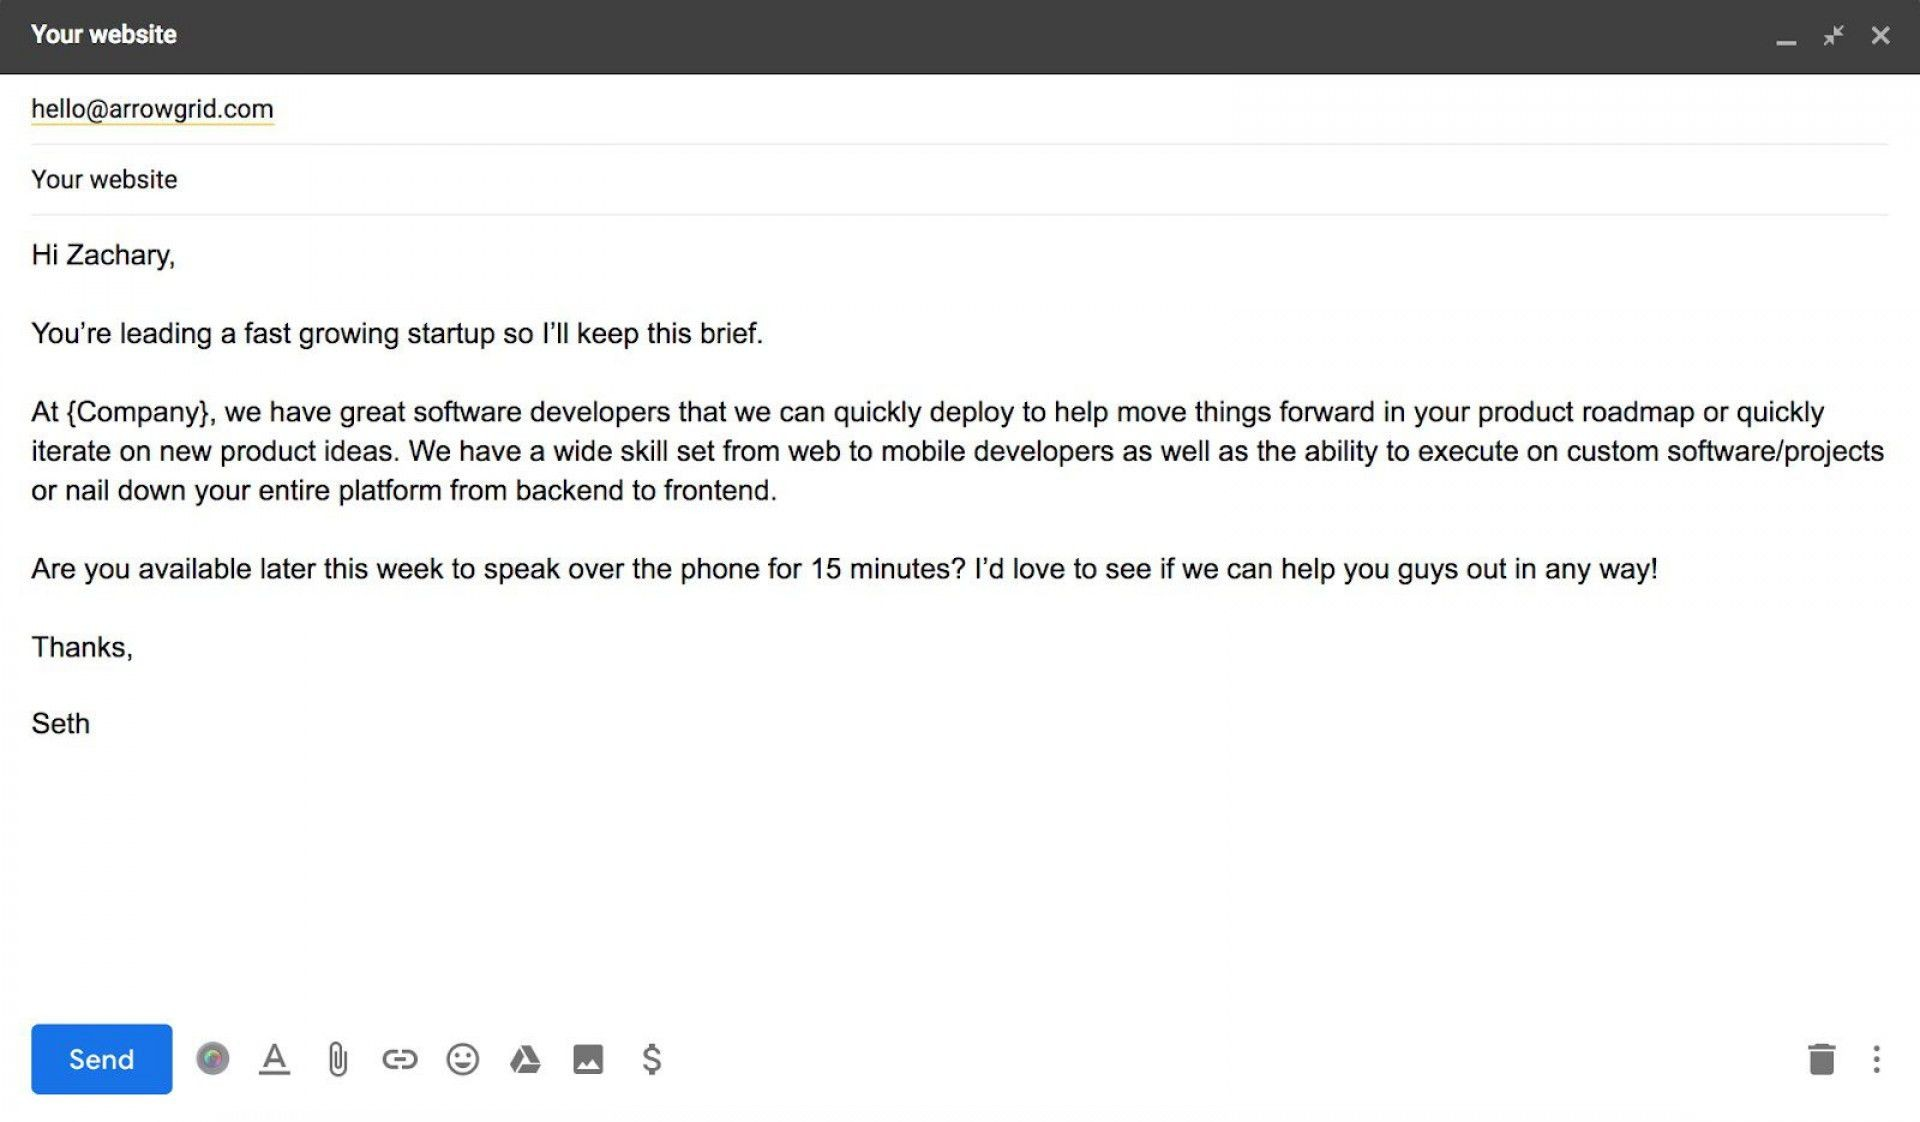 002 Incredible Follow Up Email Template After No Response Sample 1920